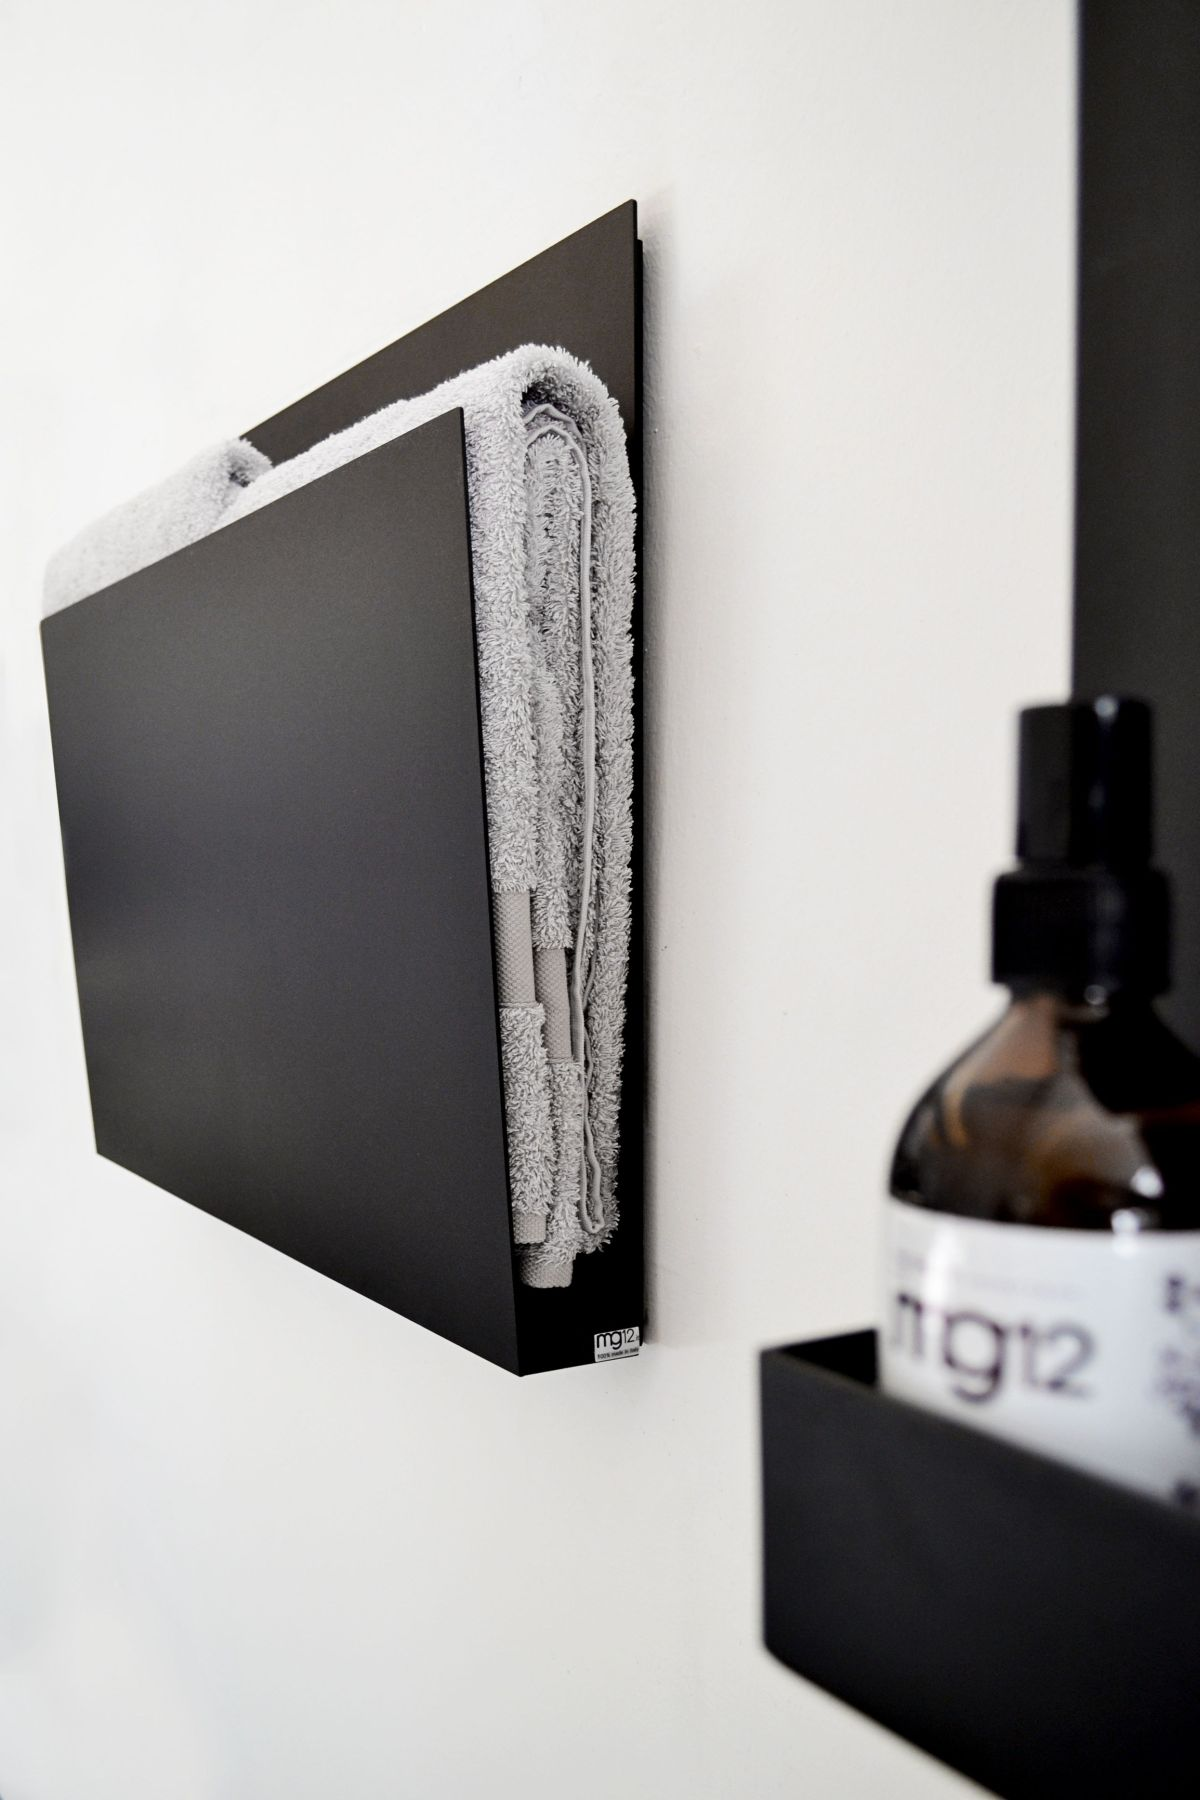 Magazine Towel warmer radiator